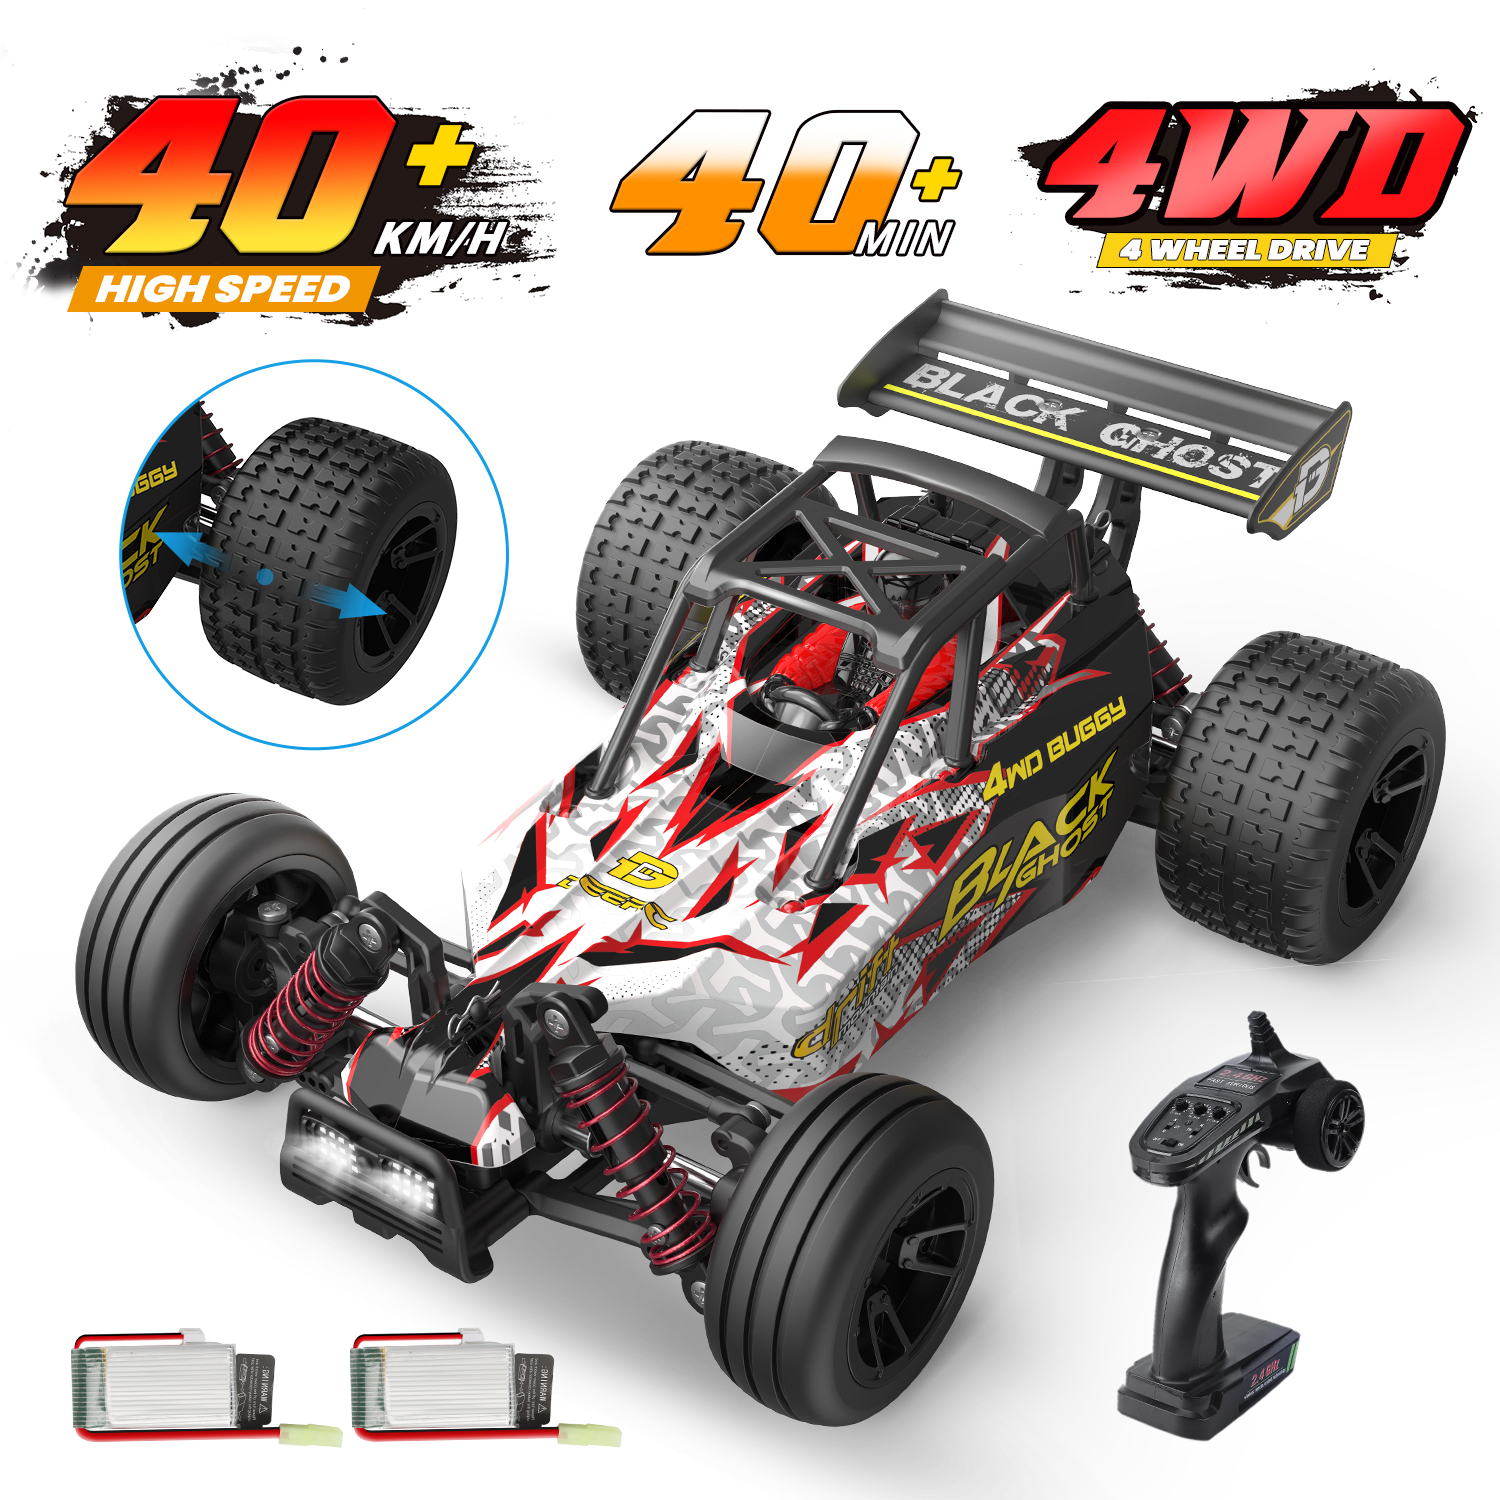 DEERC 9305E RC Cars High Speed Remote Control Car for Adults Kids Boys,1:18 Scale 25+ MPH 4WD All Terrain Off Road Monster Truck